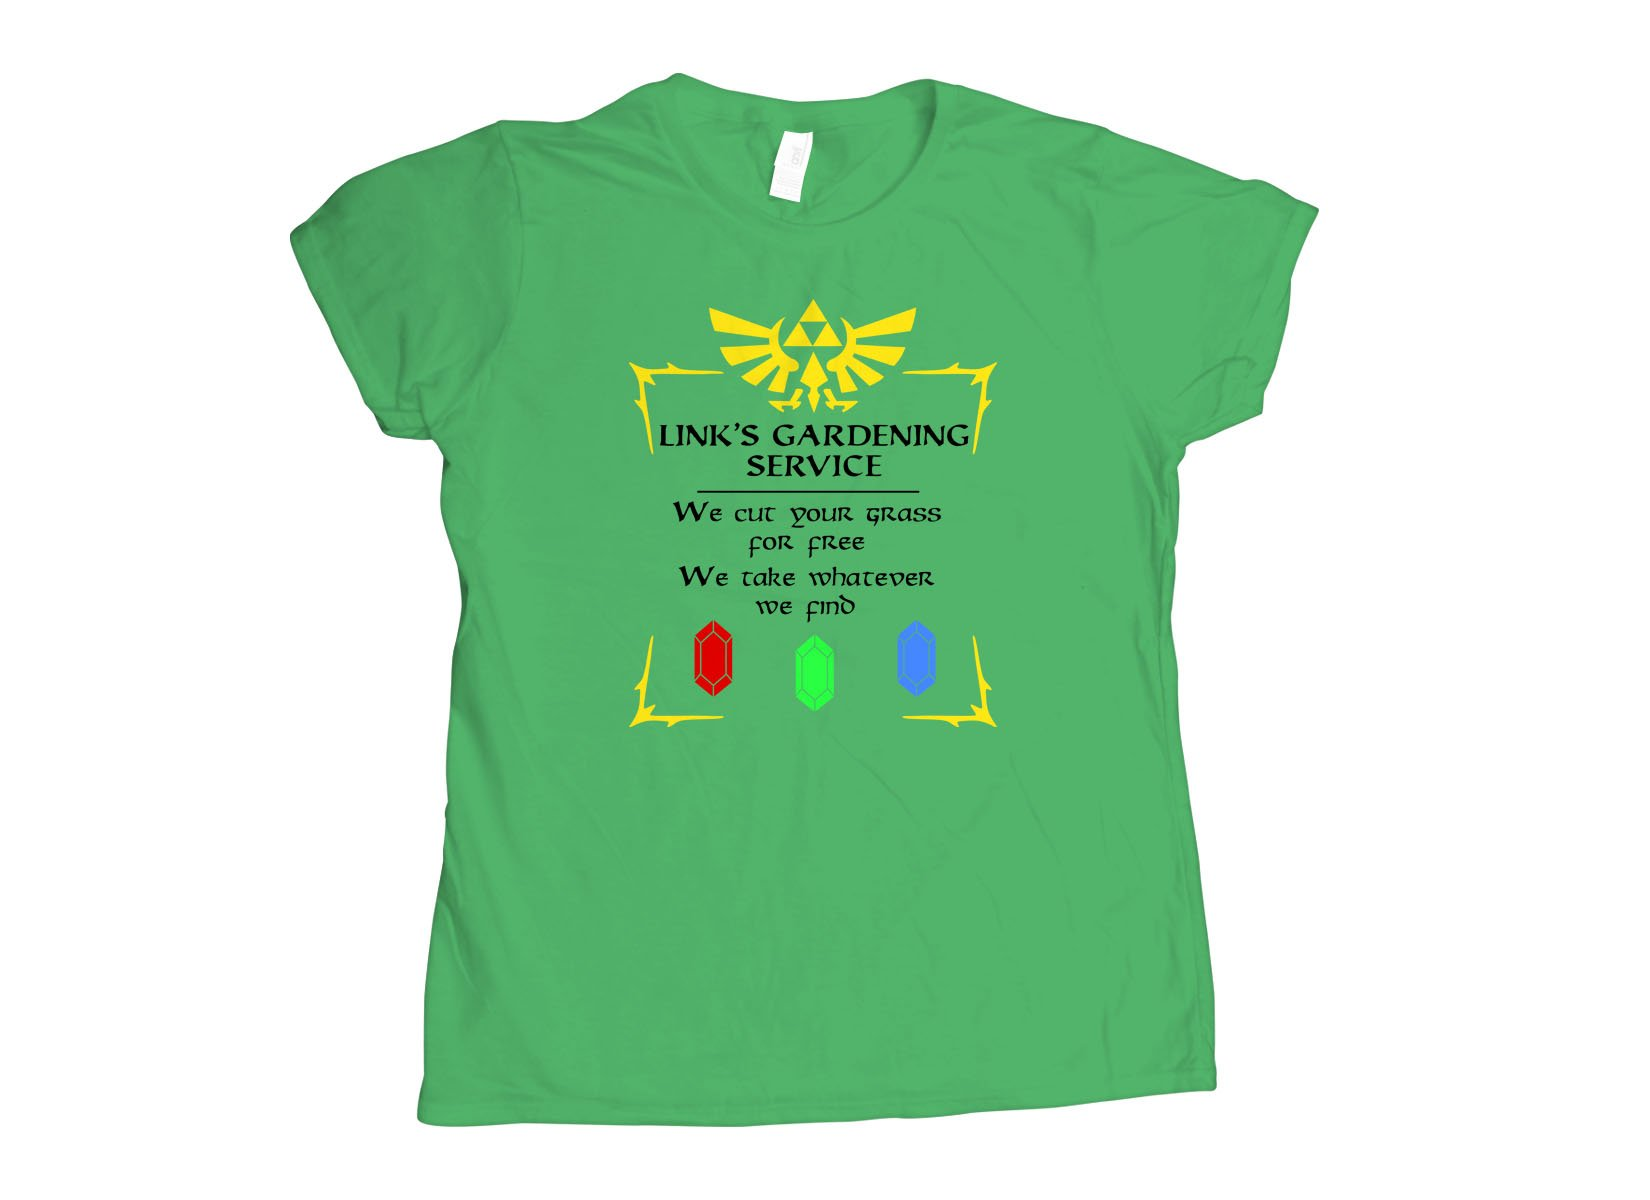 Link's Gardening Service on Womens T-Shirt